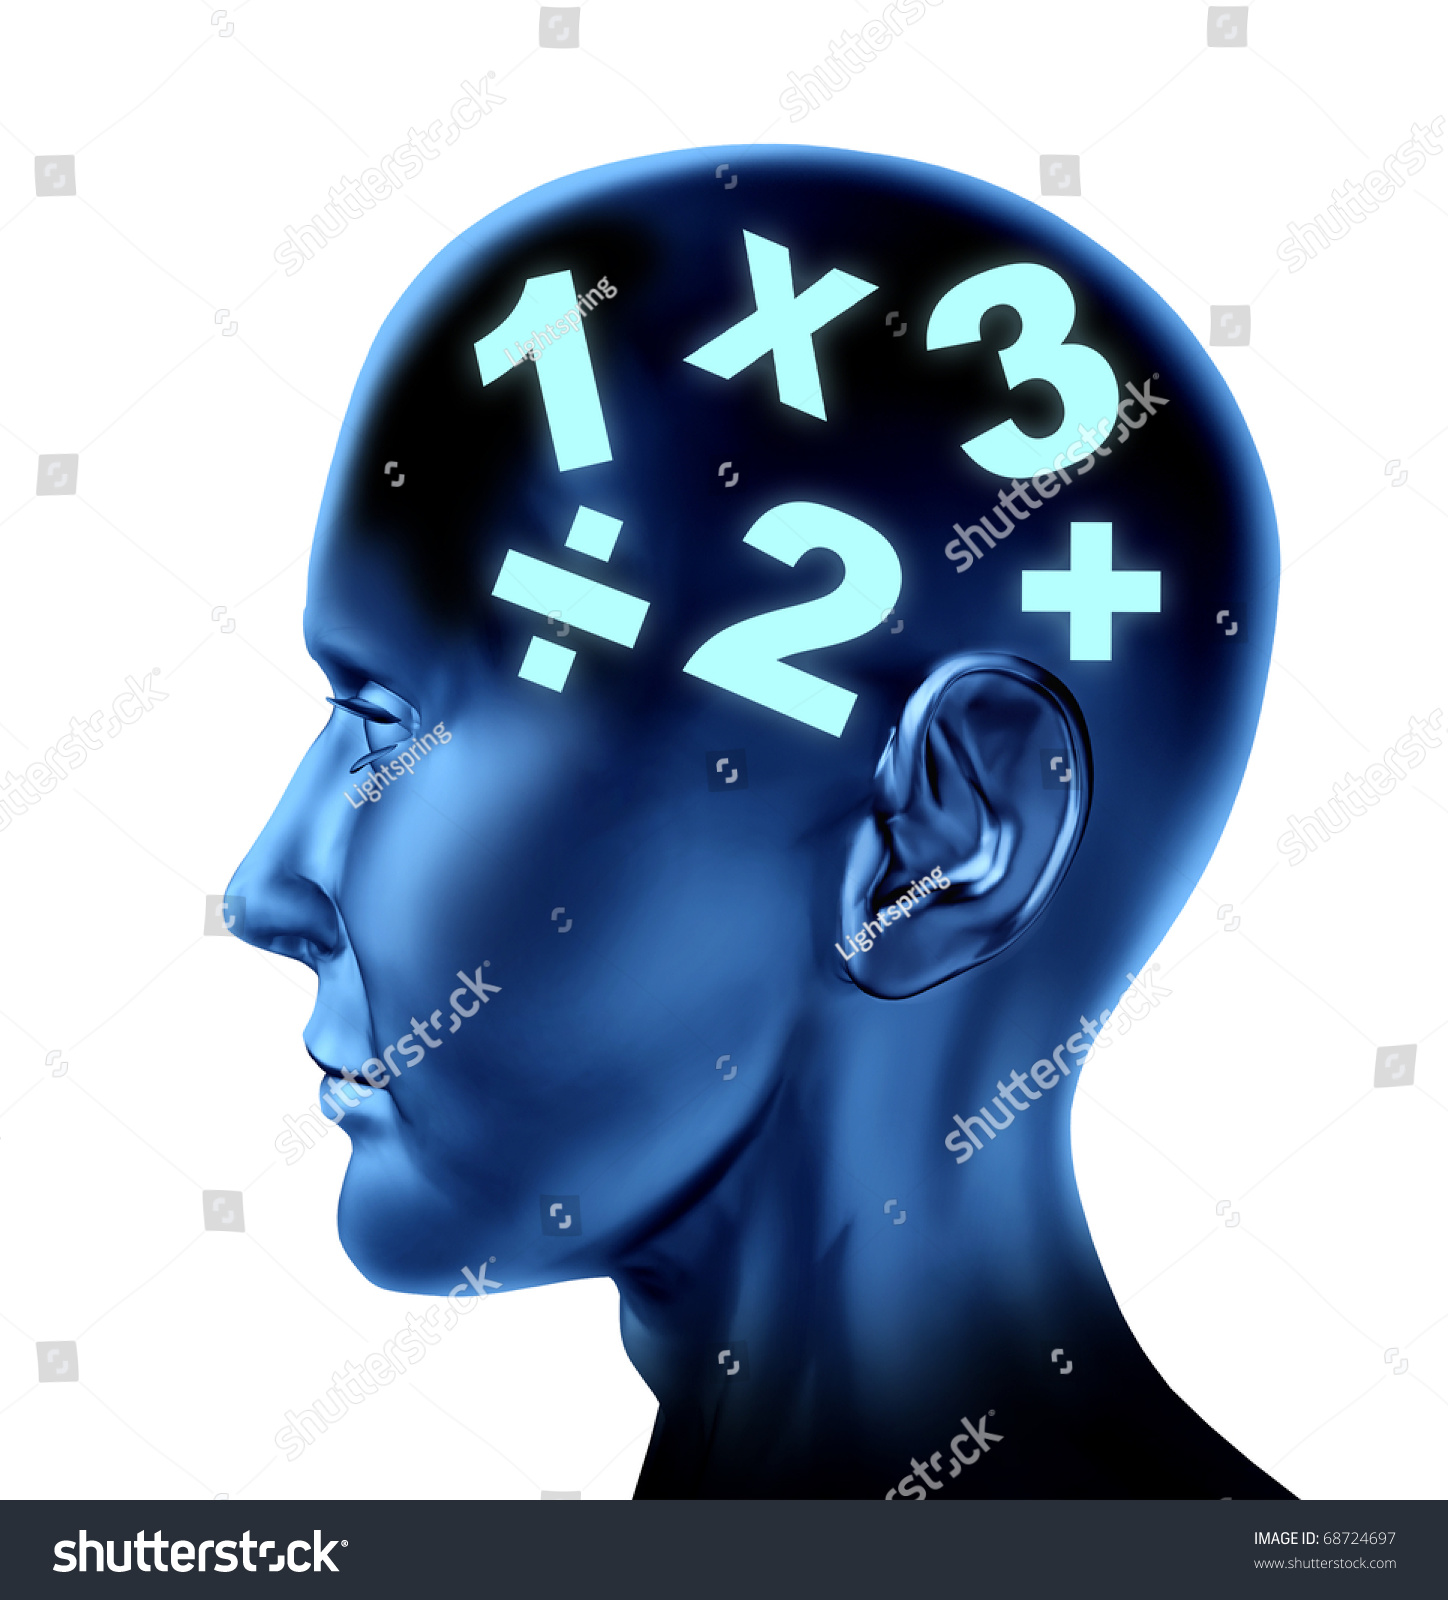 Image result for a mathematical brain